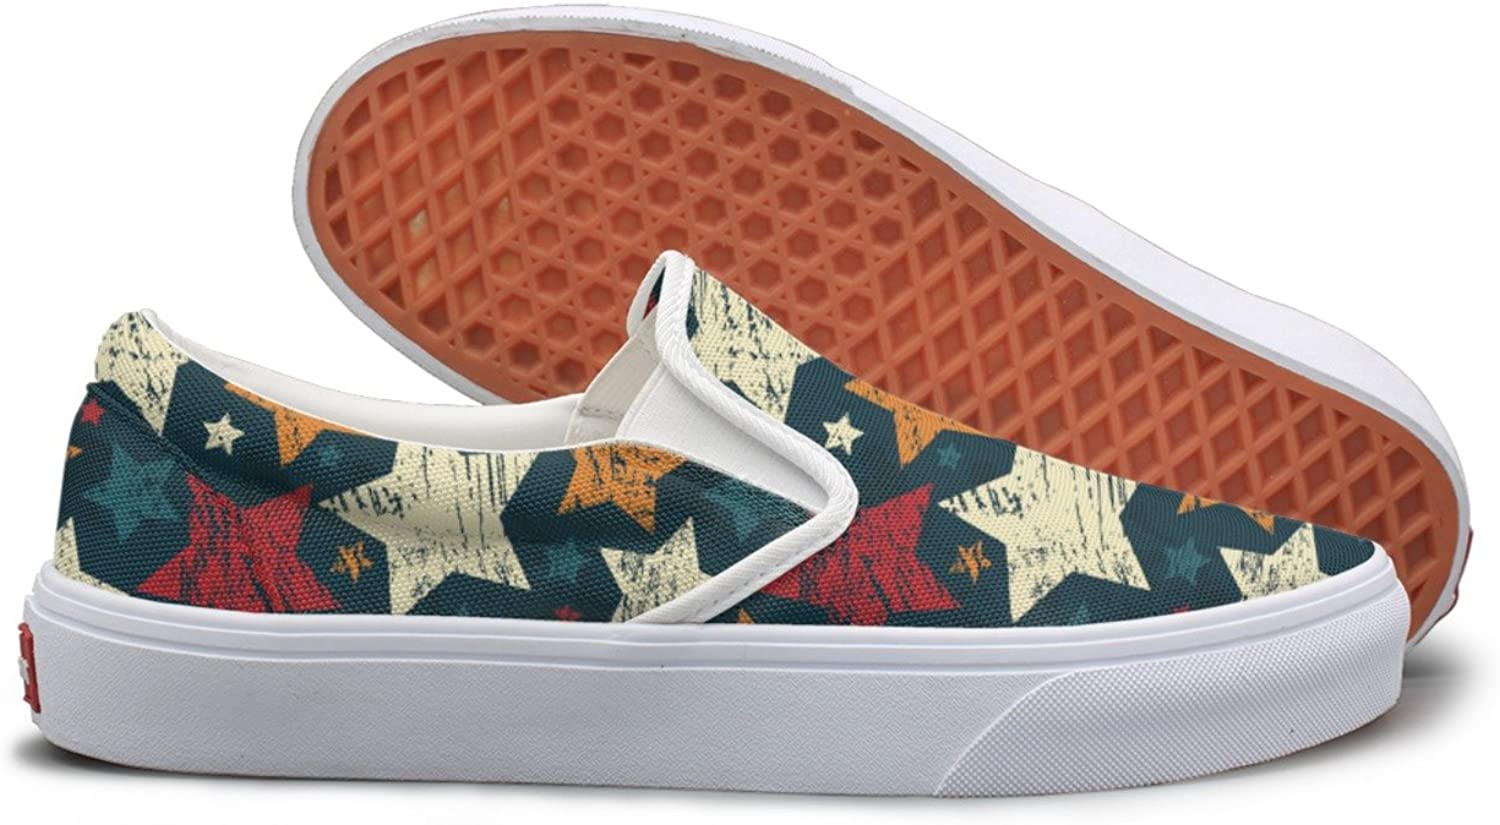 SEERTED colorful Grunge Stars Fashion Sneakers for Women